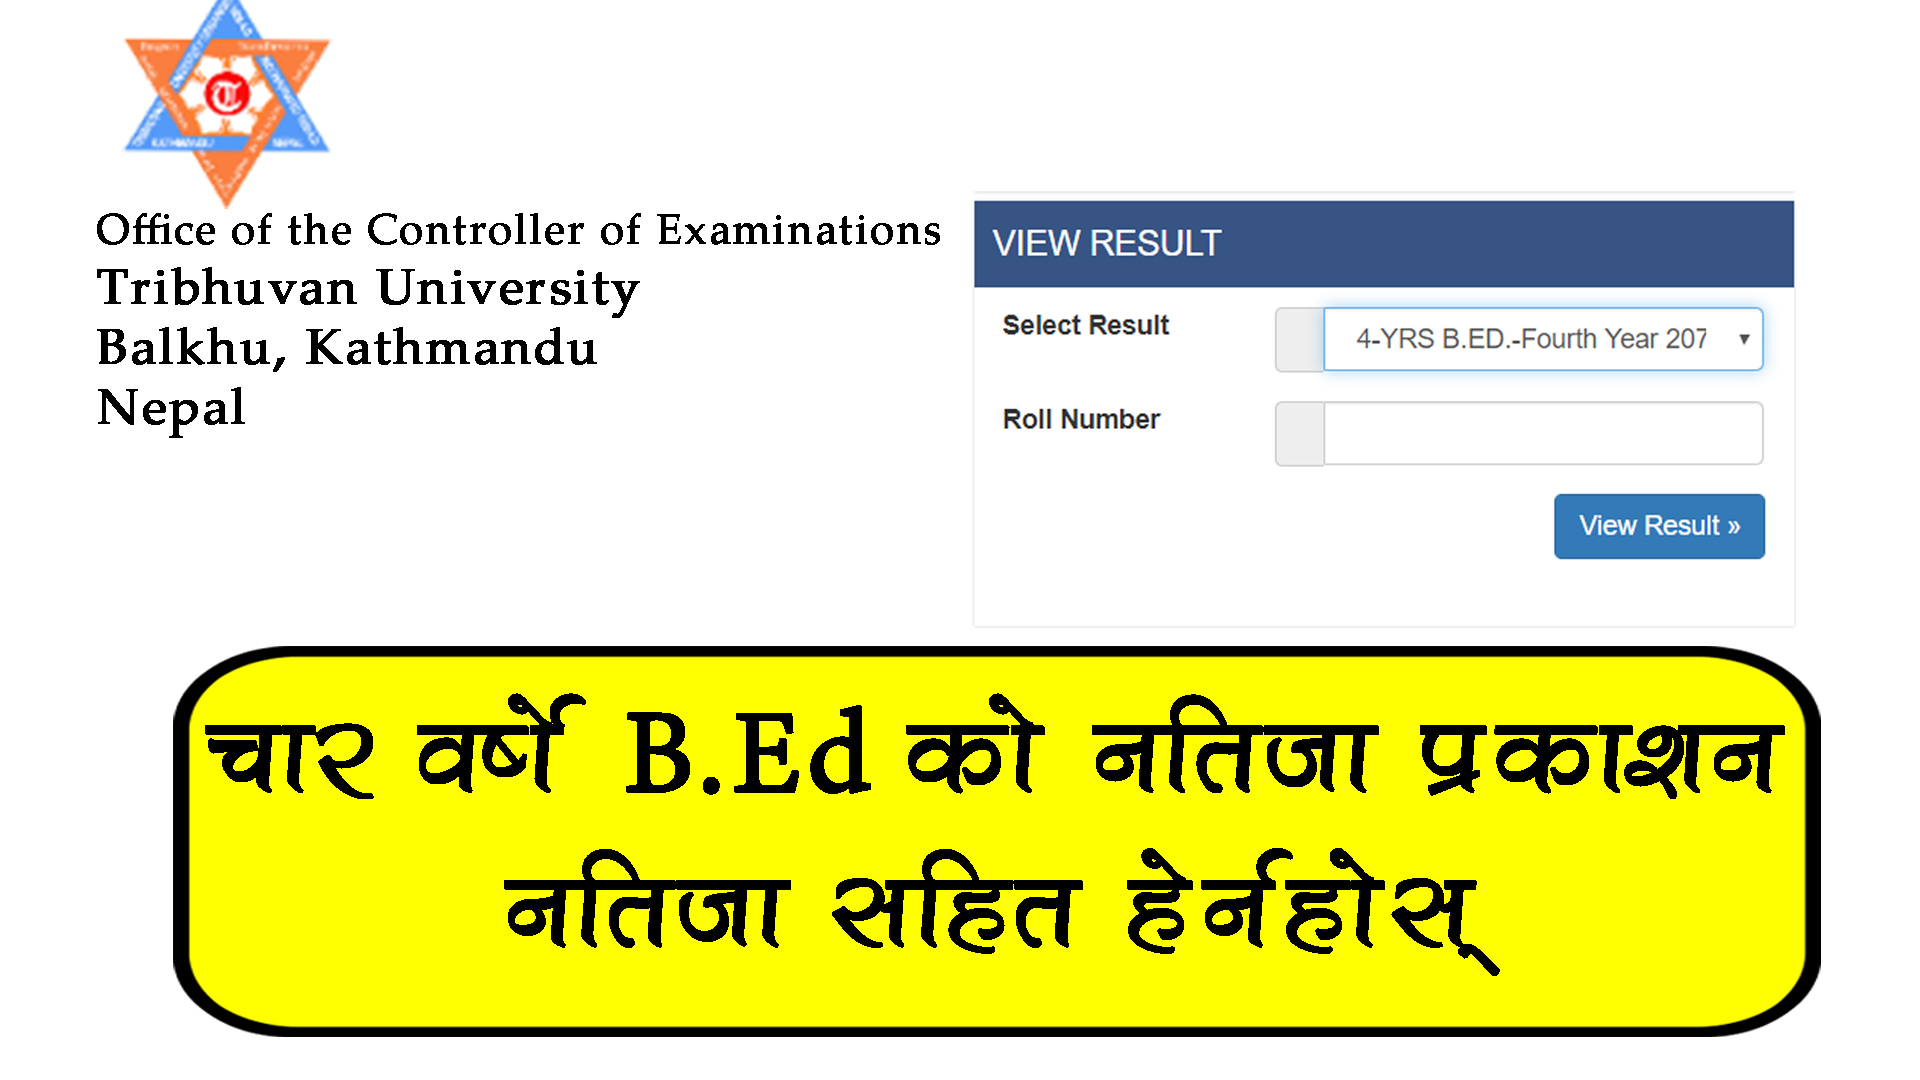 4 Years B.Ed Third Year 2076 Result Published Tribhuvan University Office of the Controller of Examination, Balkhu published the examination result of 3 Years B.Ed (Chance) First Year 2075.